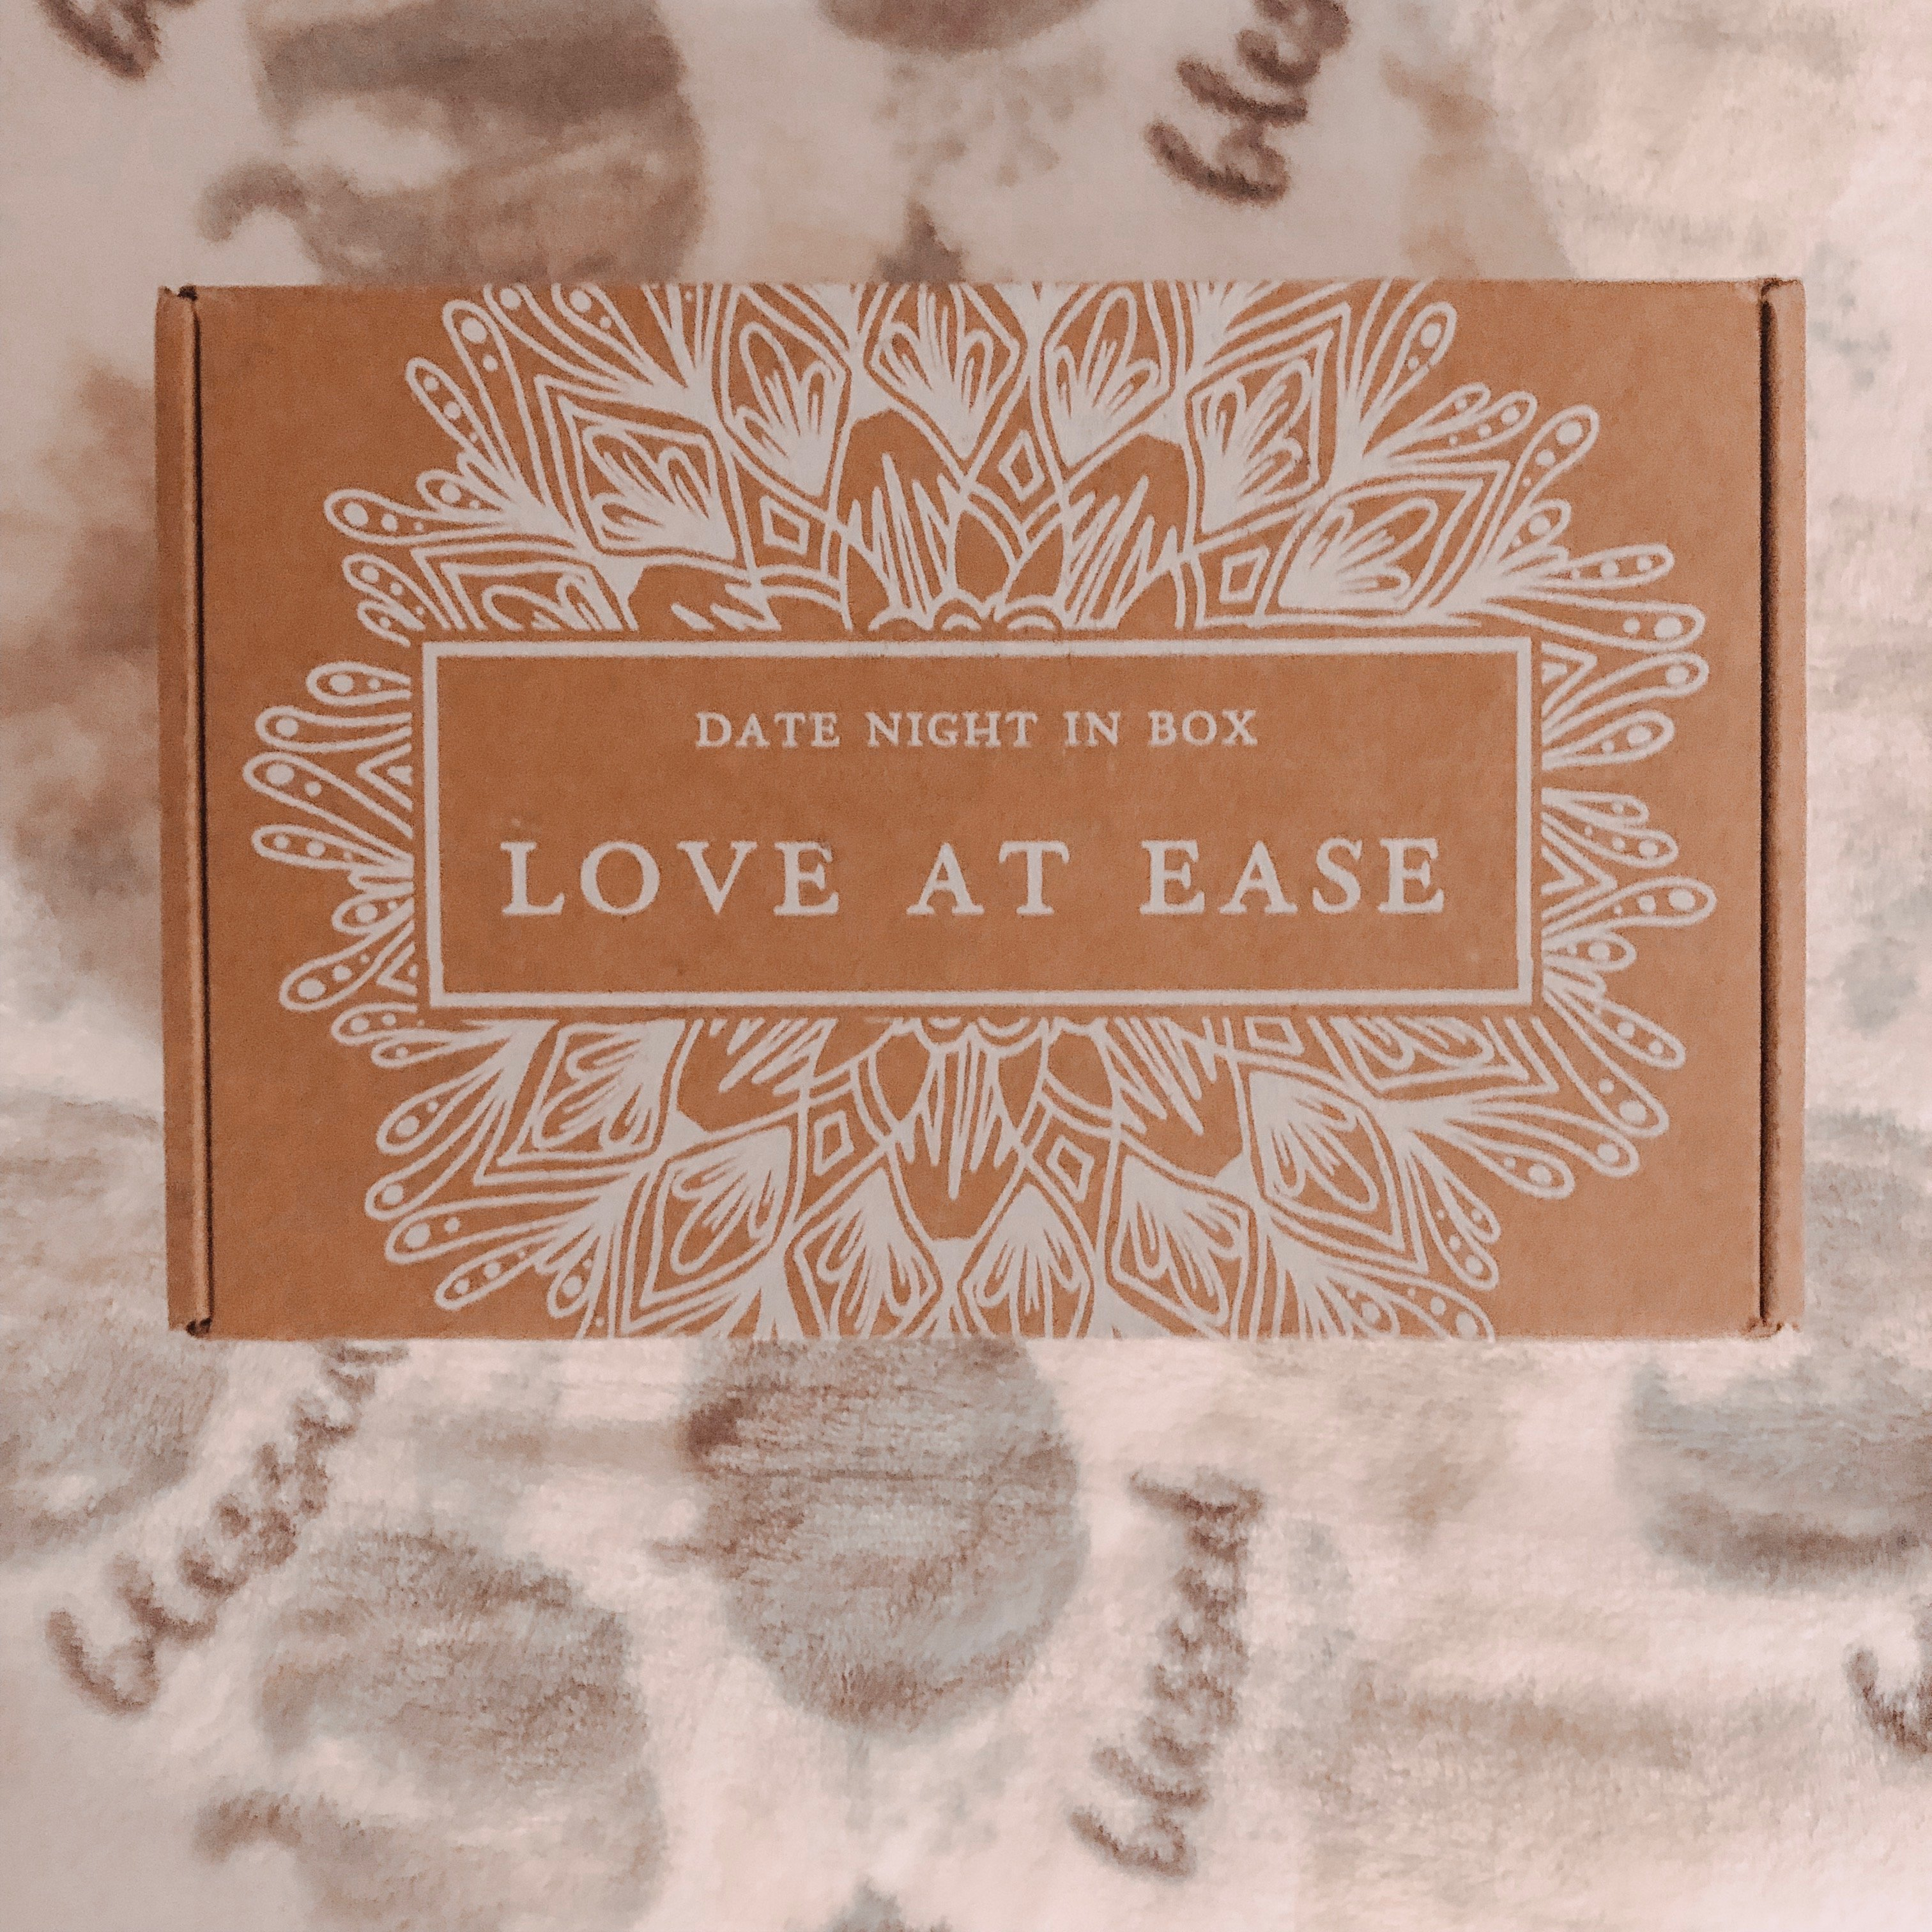 Date Night In Box: Love At Ease